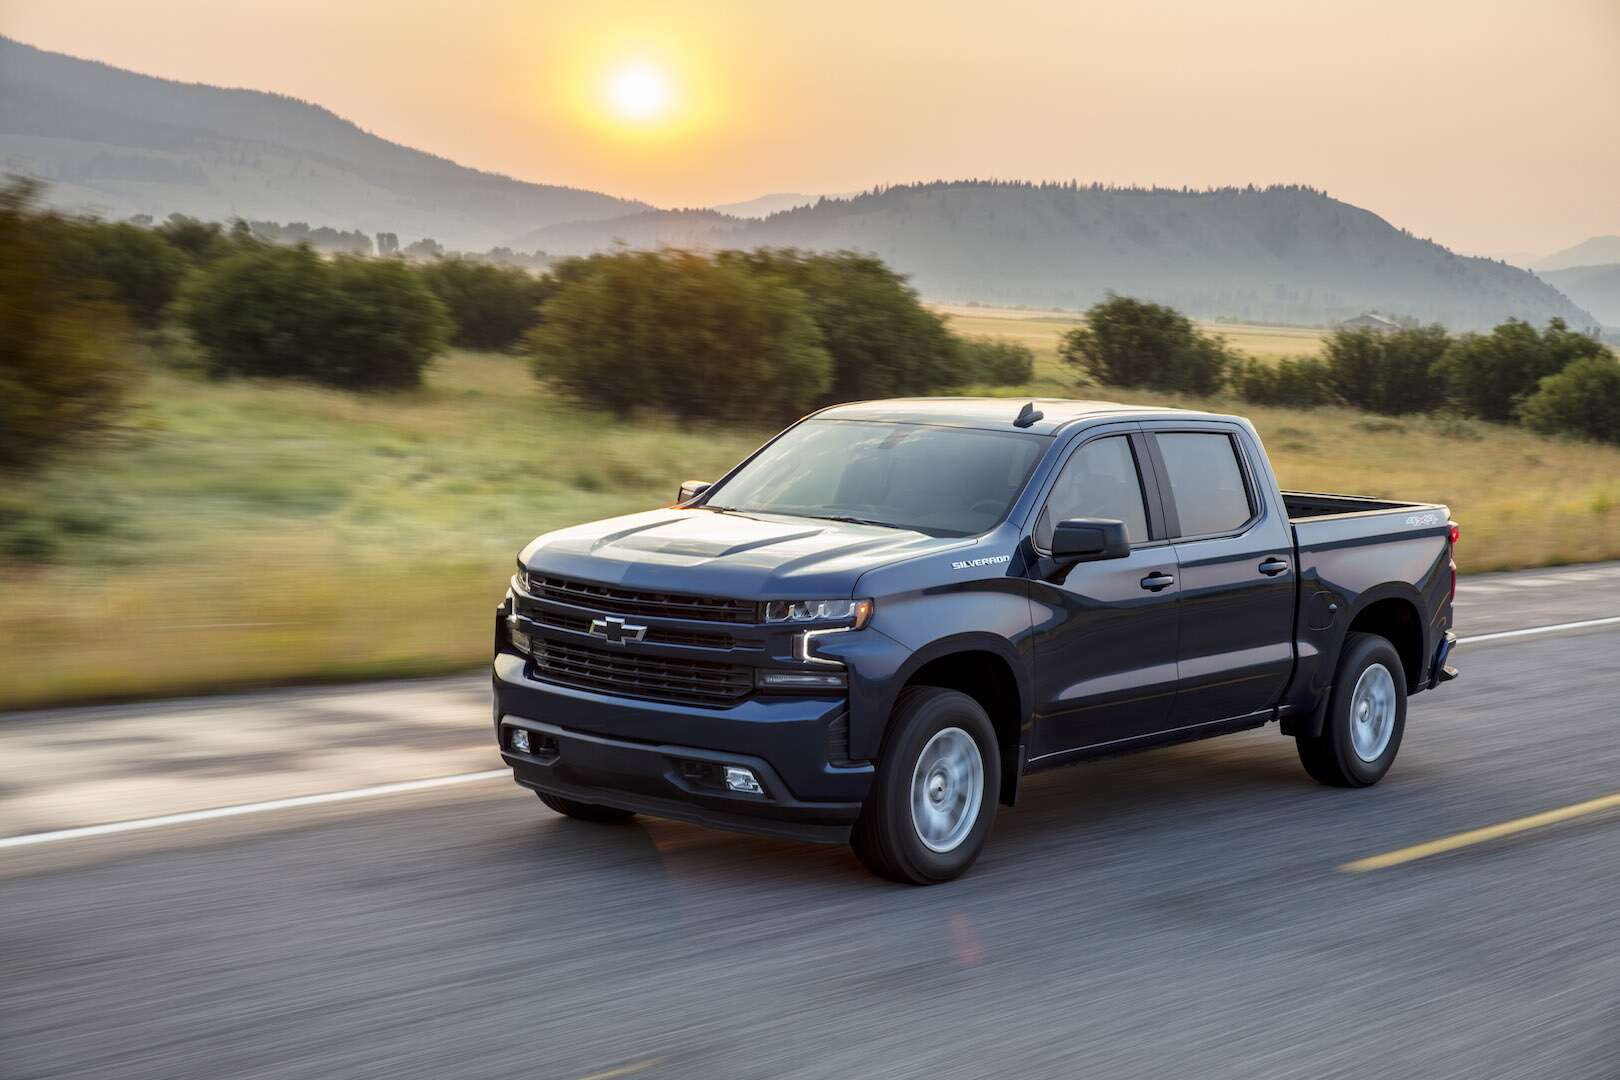 2019 Chevrolet Silverado Test Drive Review: GM's New Full ...